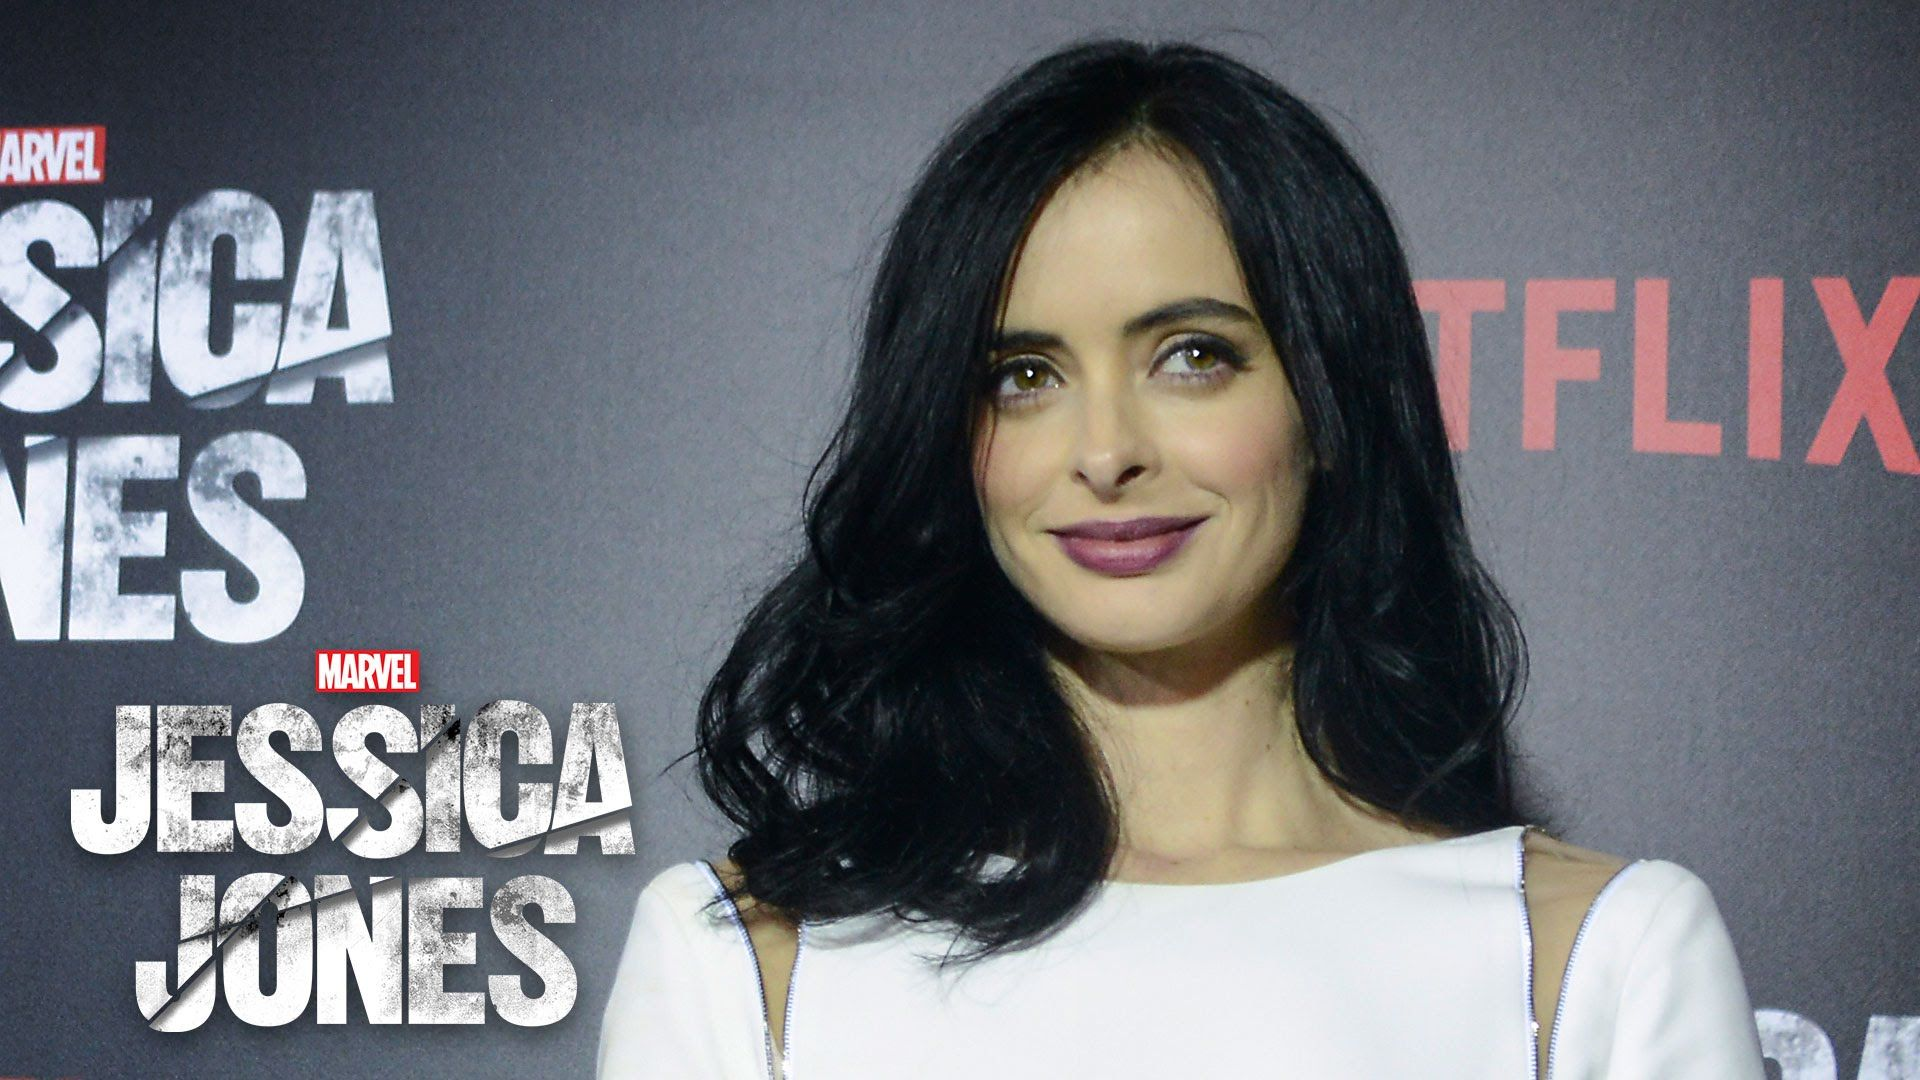 Video Krysten Ritter nudes (87 photo), Topless, Paparazzi, Feet, cleavage 2017